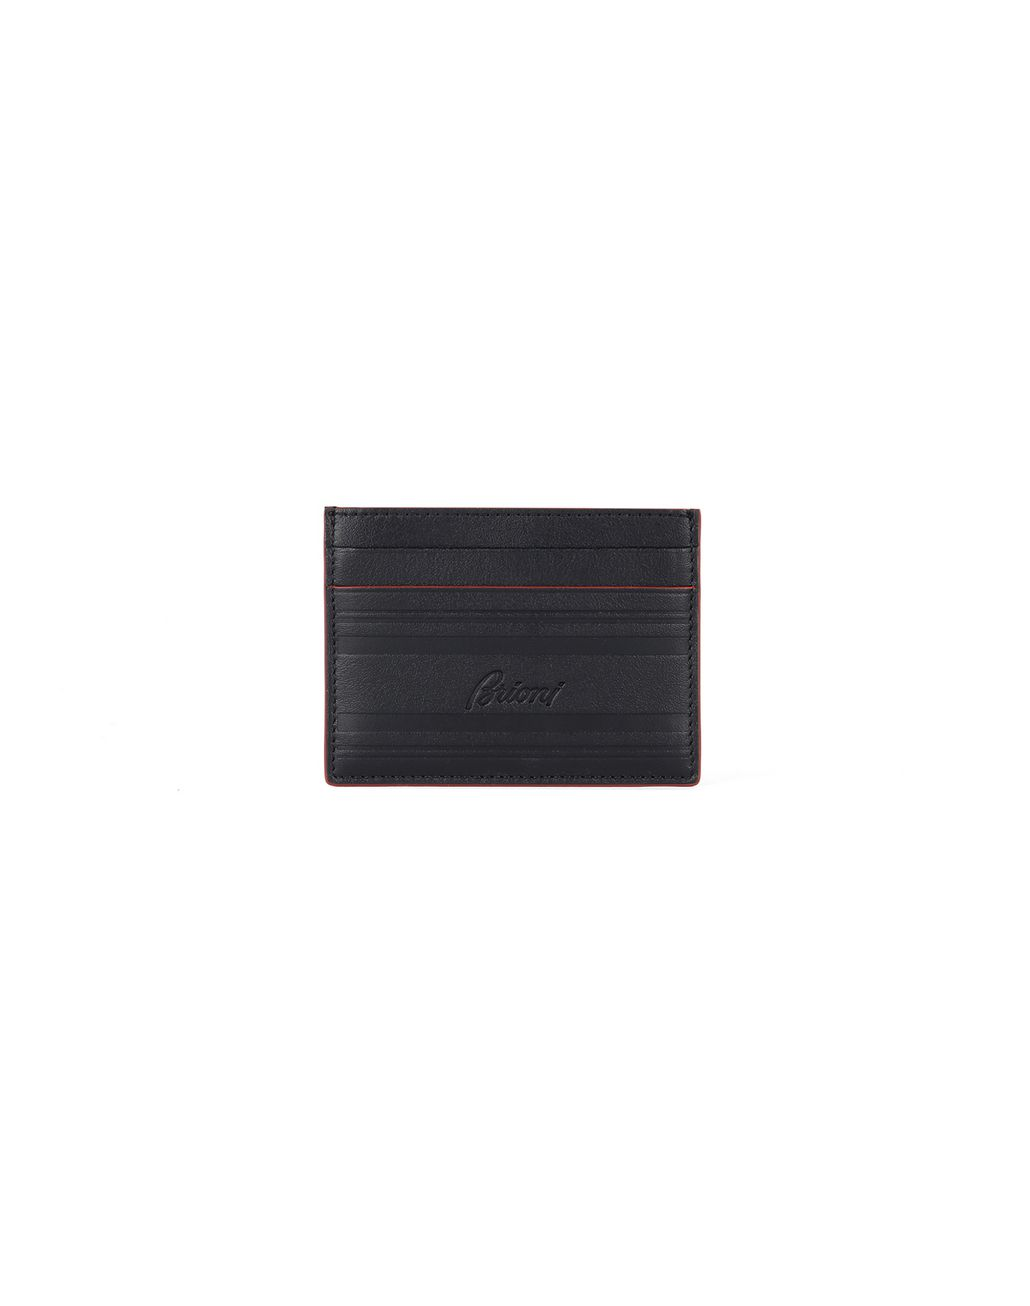 BRIONI Black Cardholder Leather Goods Man f